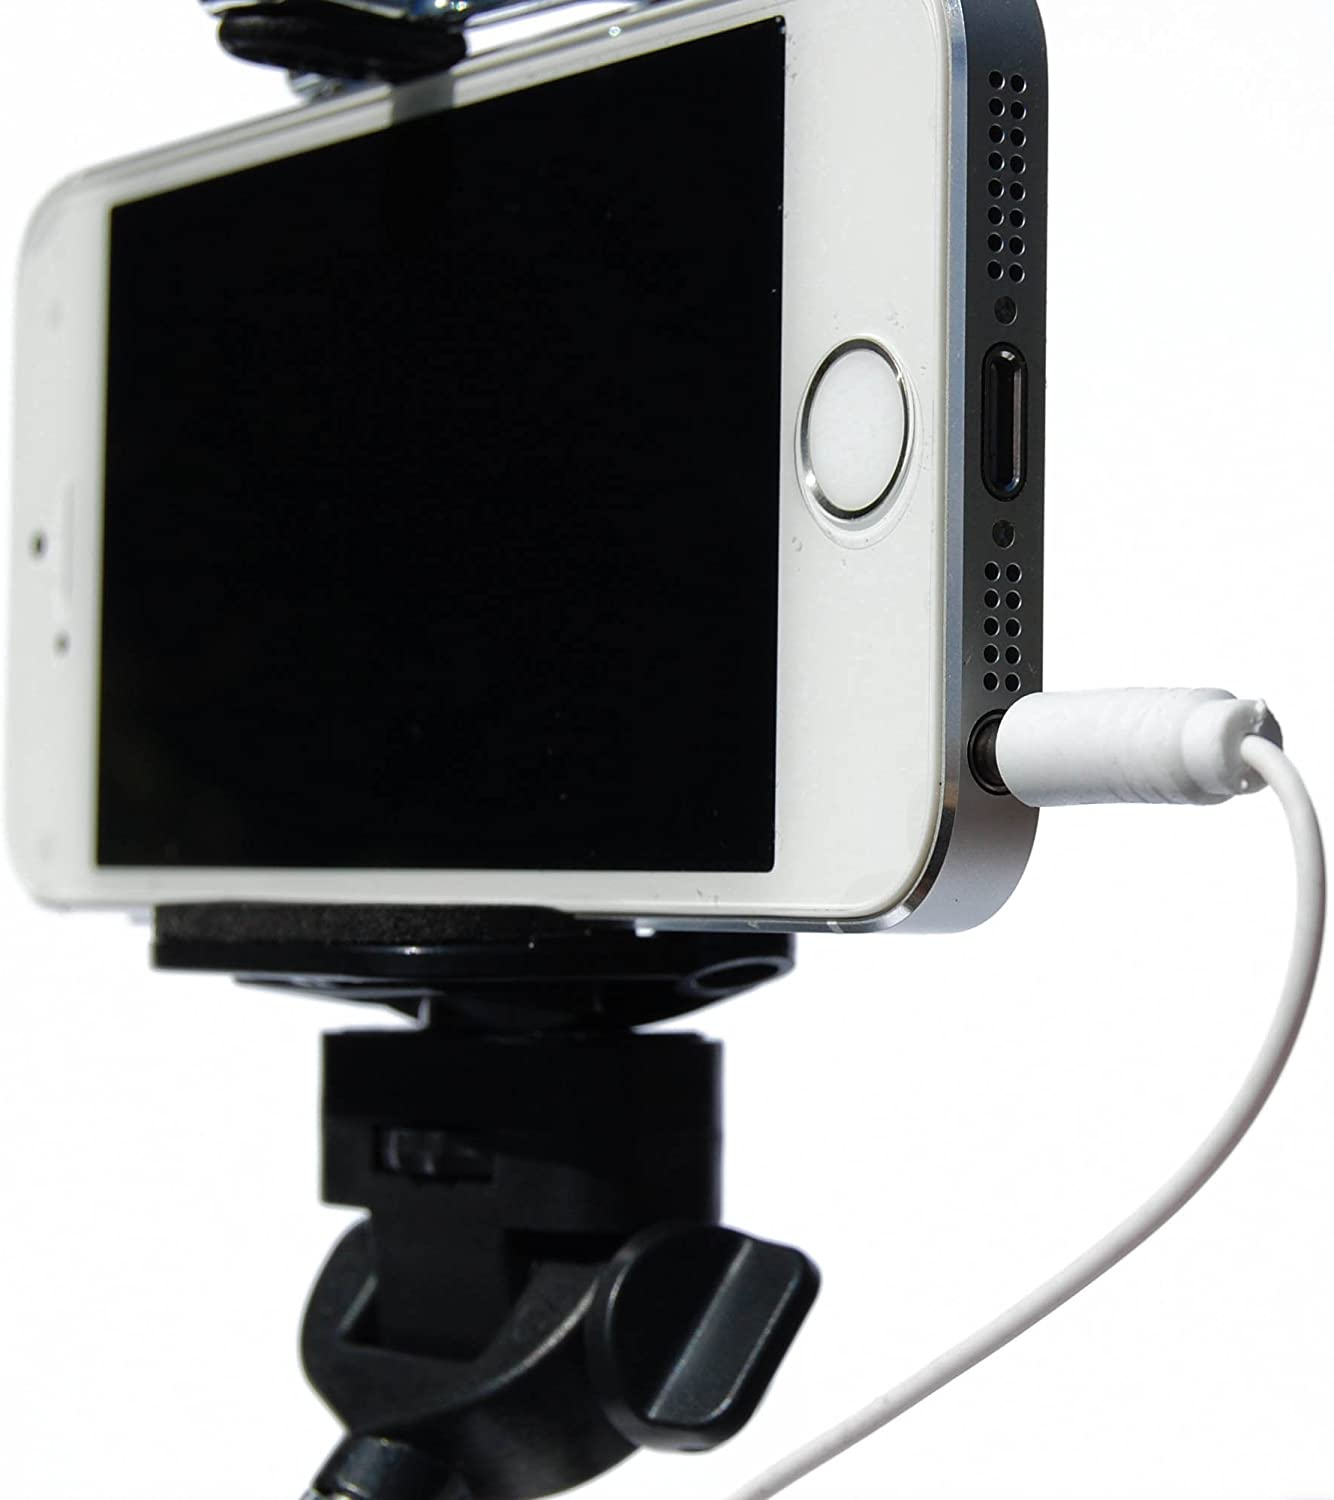 Selfie Stick for Easy Phone Photos Plug in Cable and Click Button Black Handle